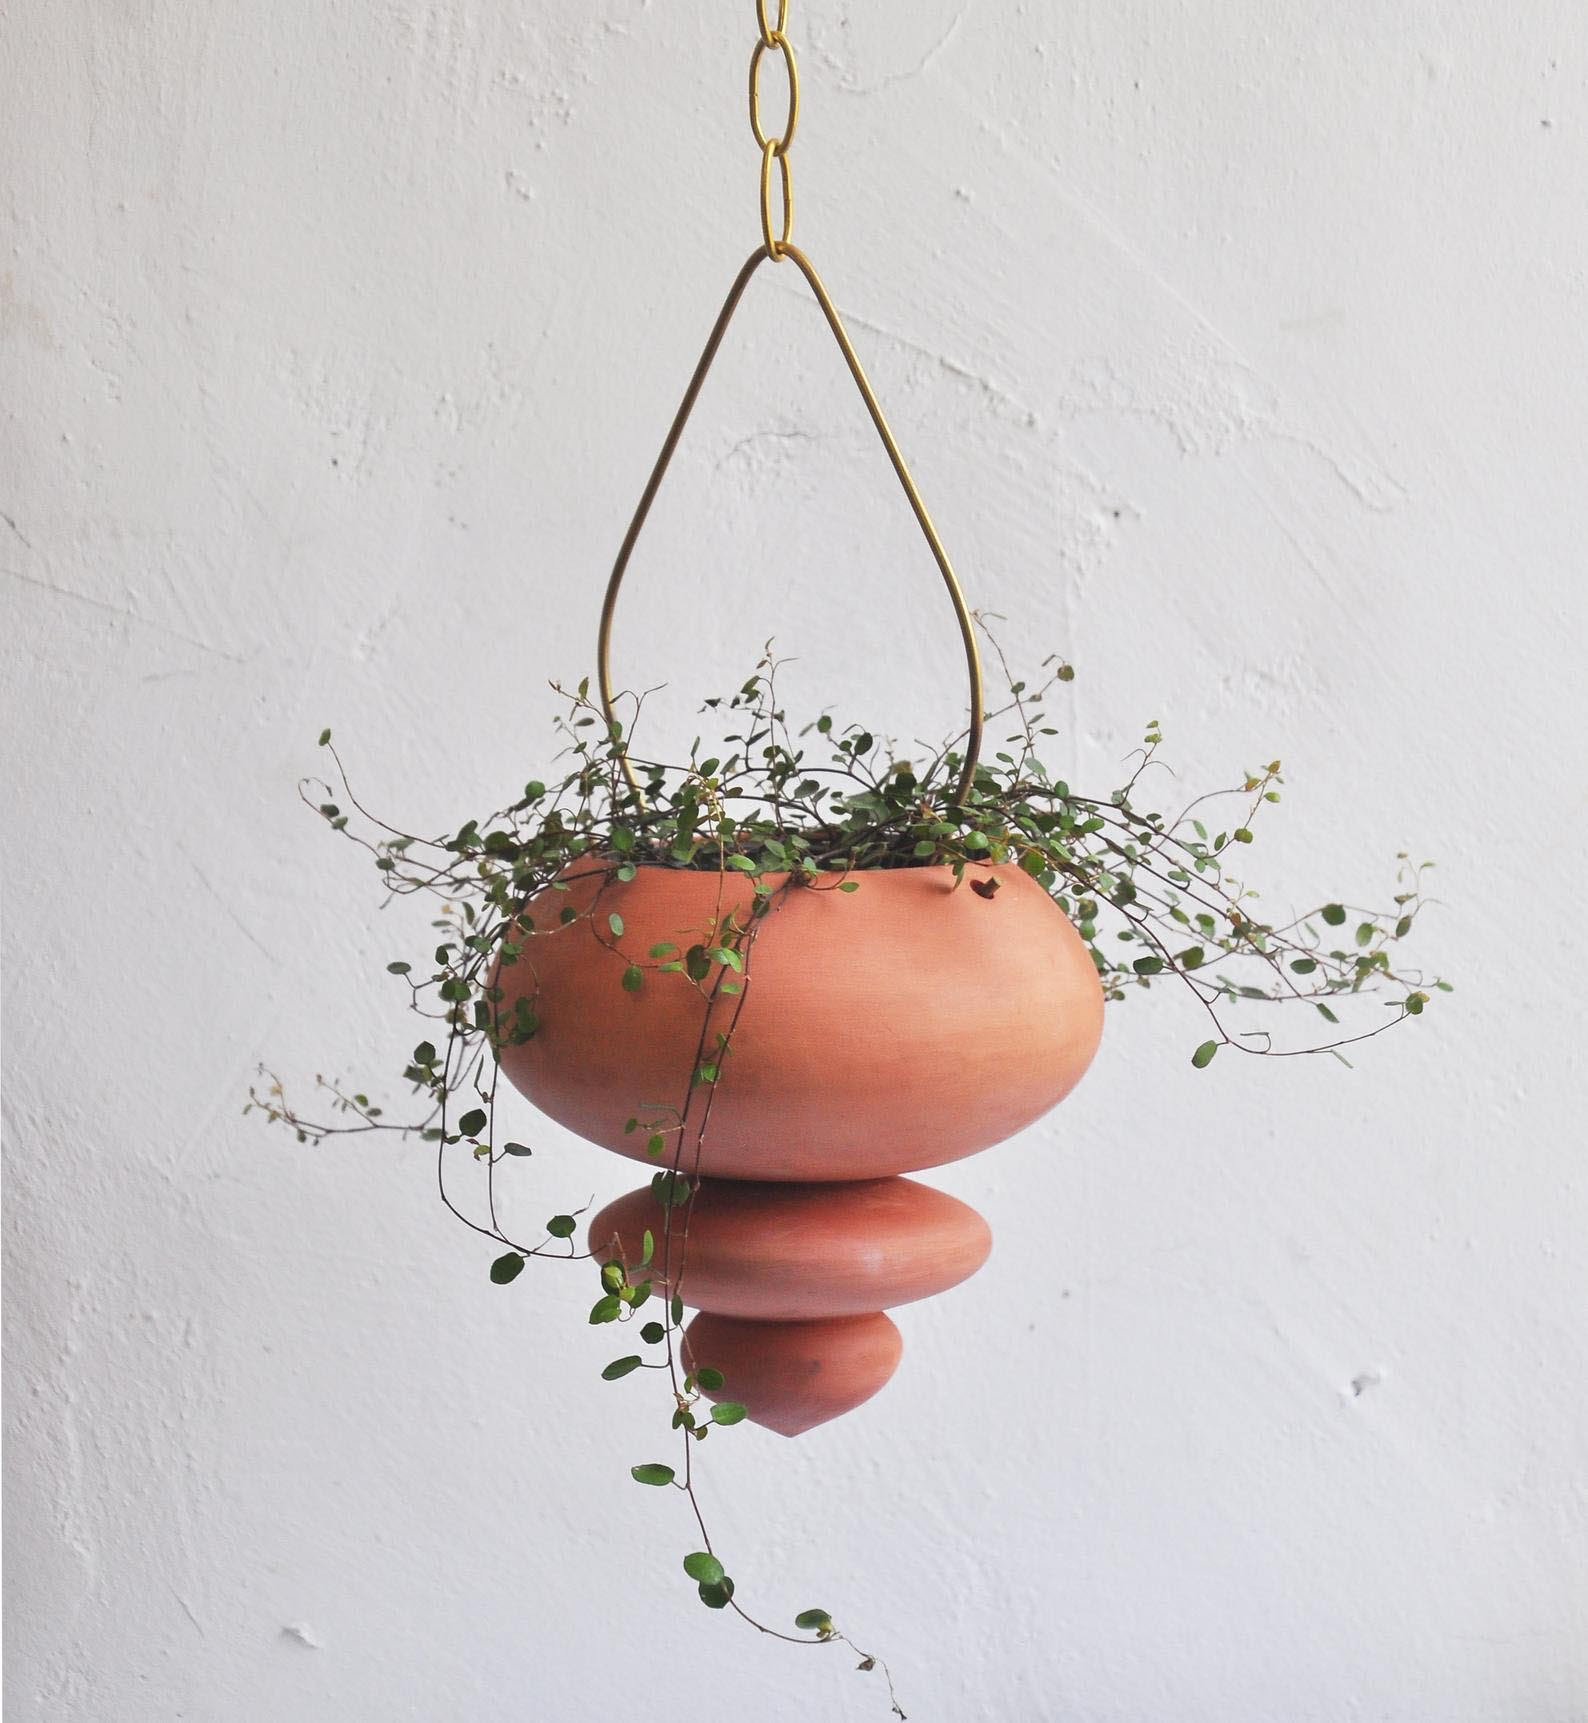 Gift Idea - Hanging Ceramic Planter